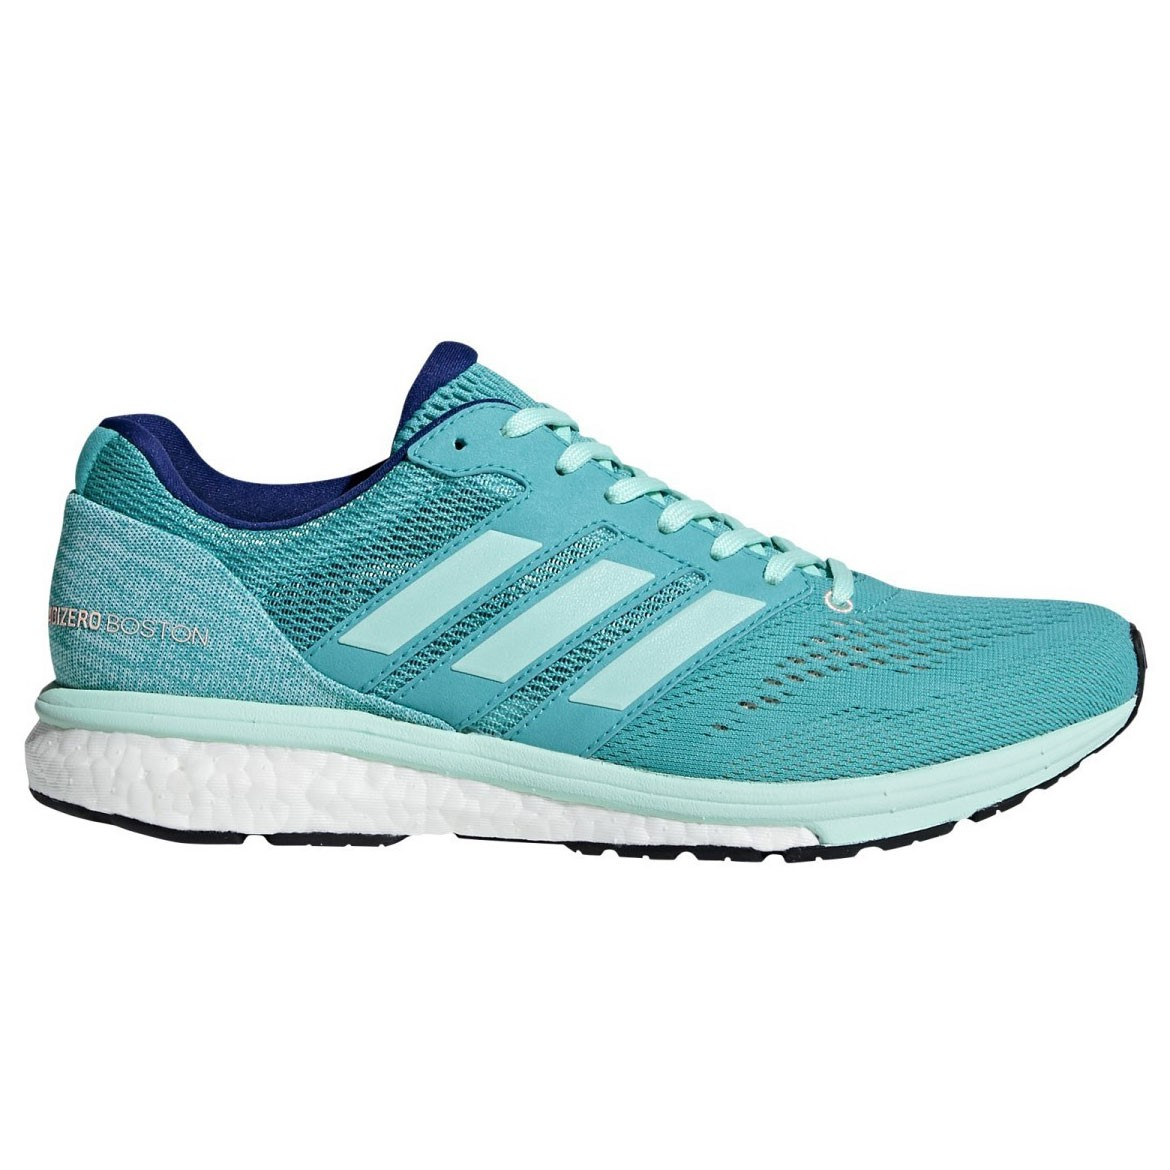 separation shoes f6184 2fb4b Adidas Adizero Boston 7 Boost - Womens Running Shoes - Hi-Res AquaClear